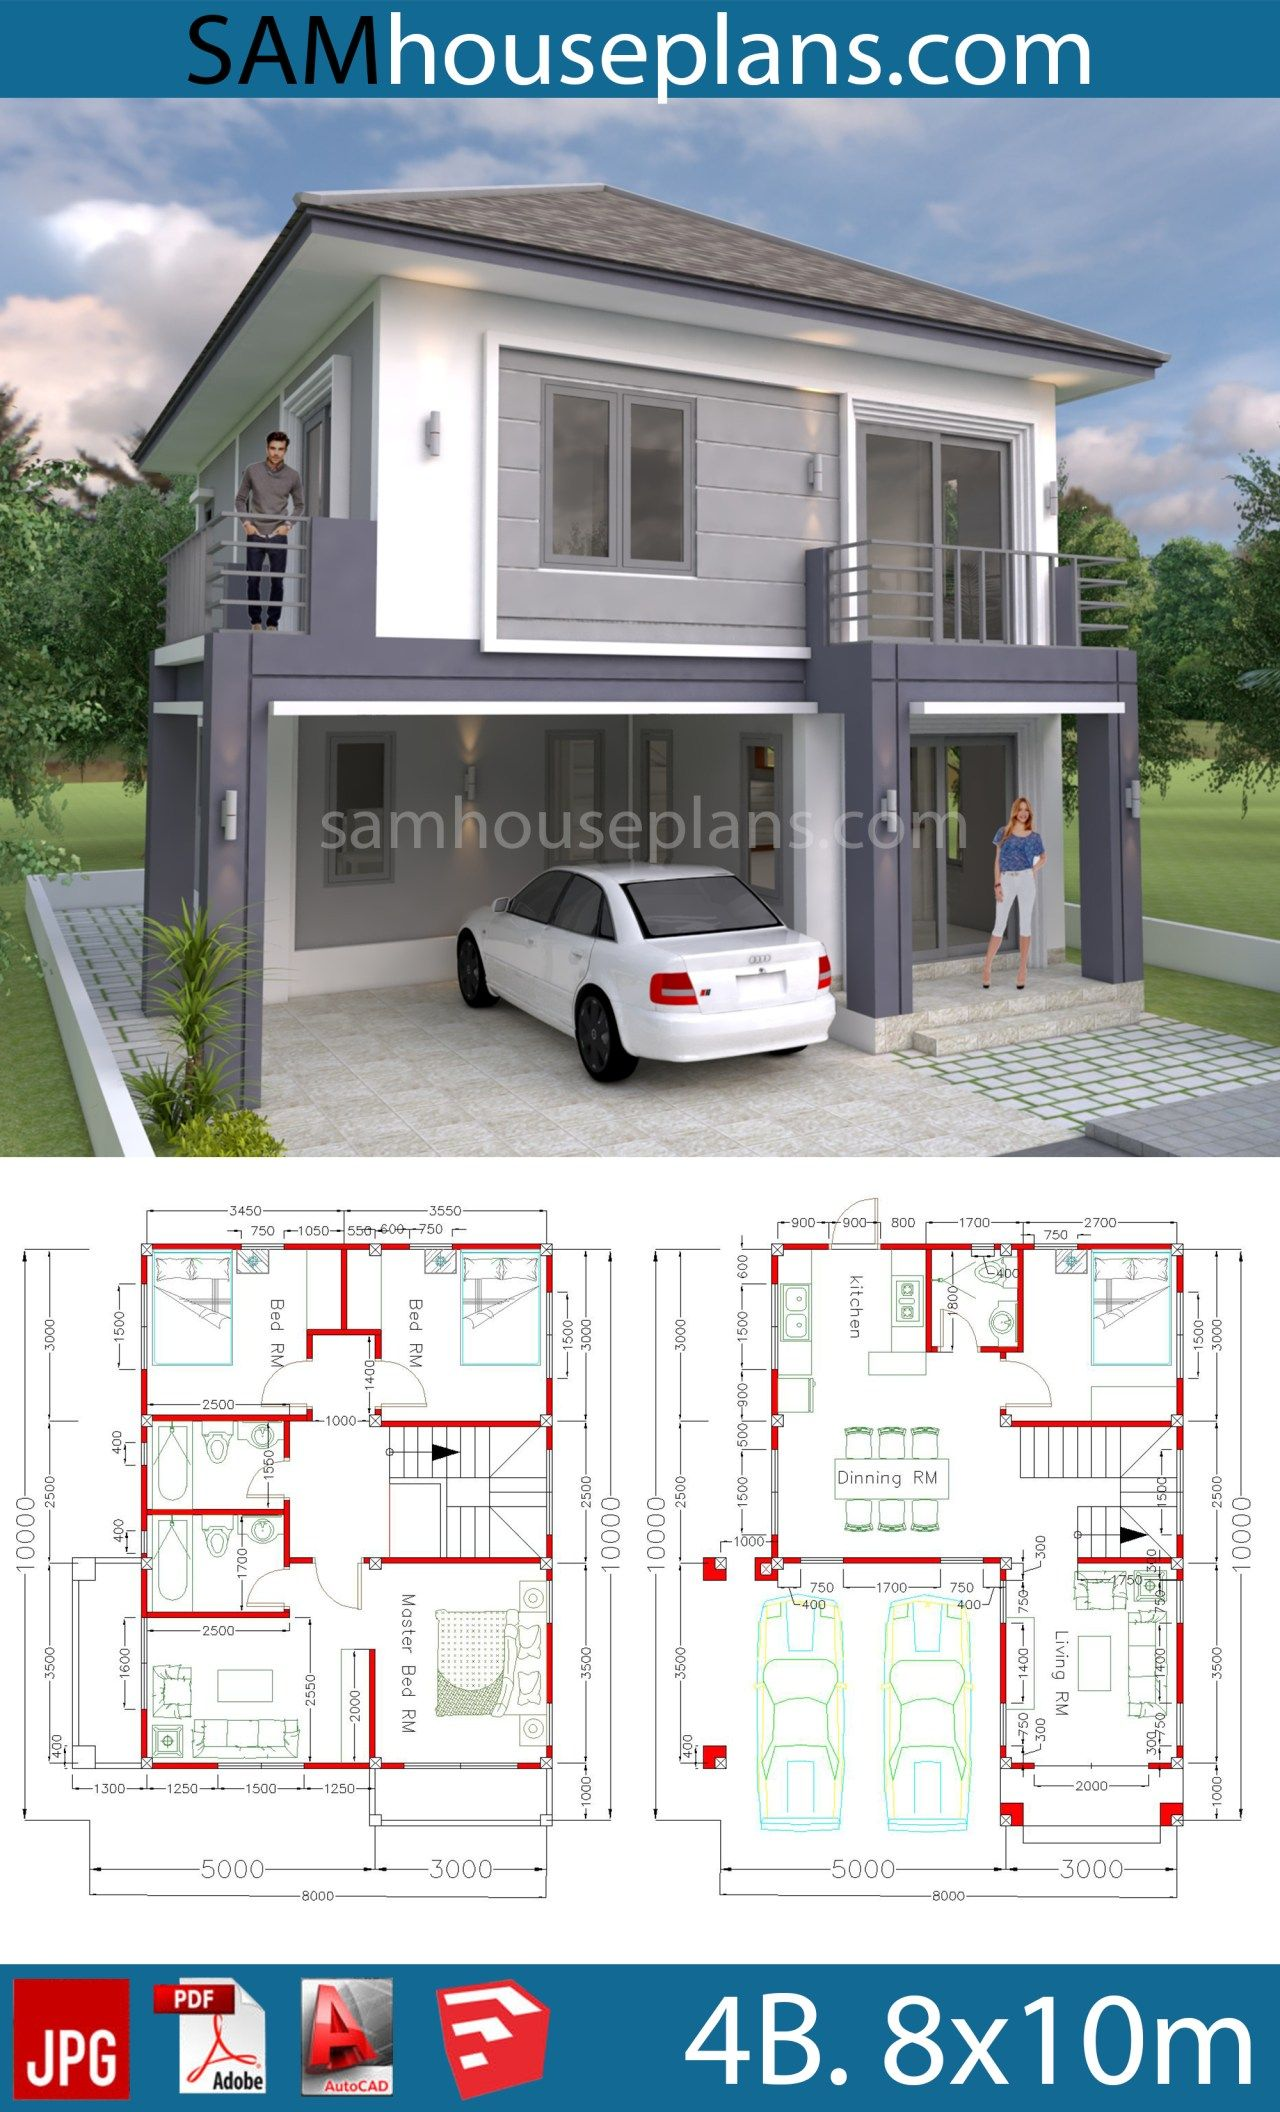 House Plans 8x10m With 4 Bedrooms Sam House Plans Small Modern House Plans 2 Storey House Design Duplex House Plans